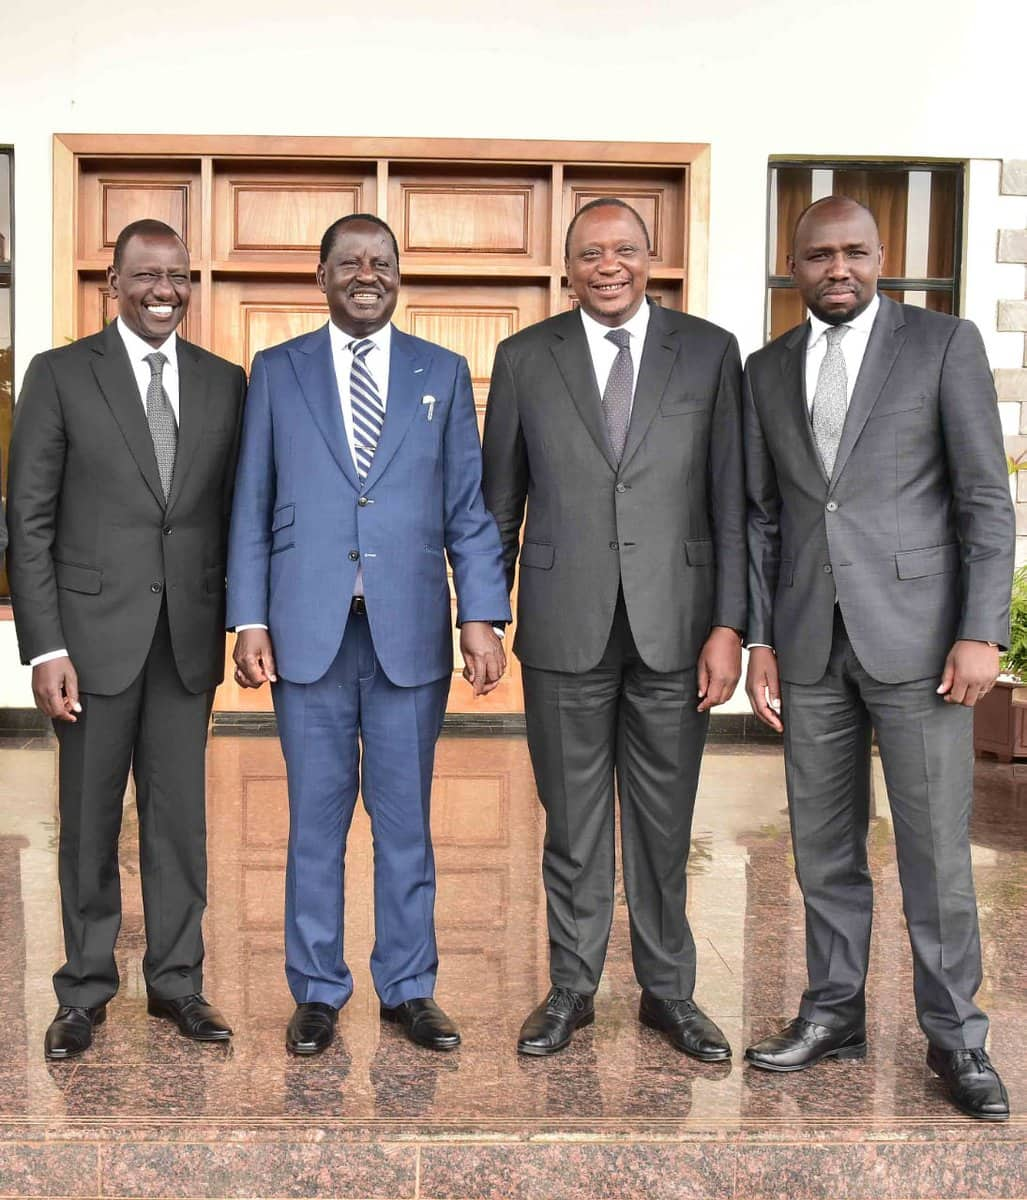 Raila, Ruto put aside political differences to share lunch at deputy president's home